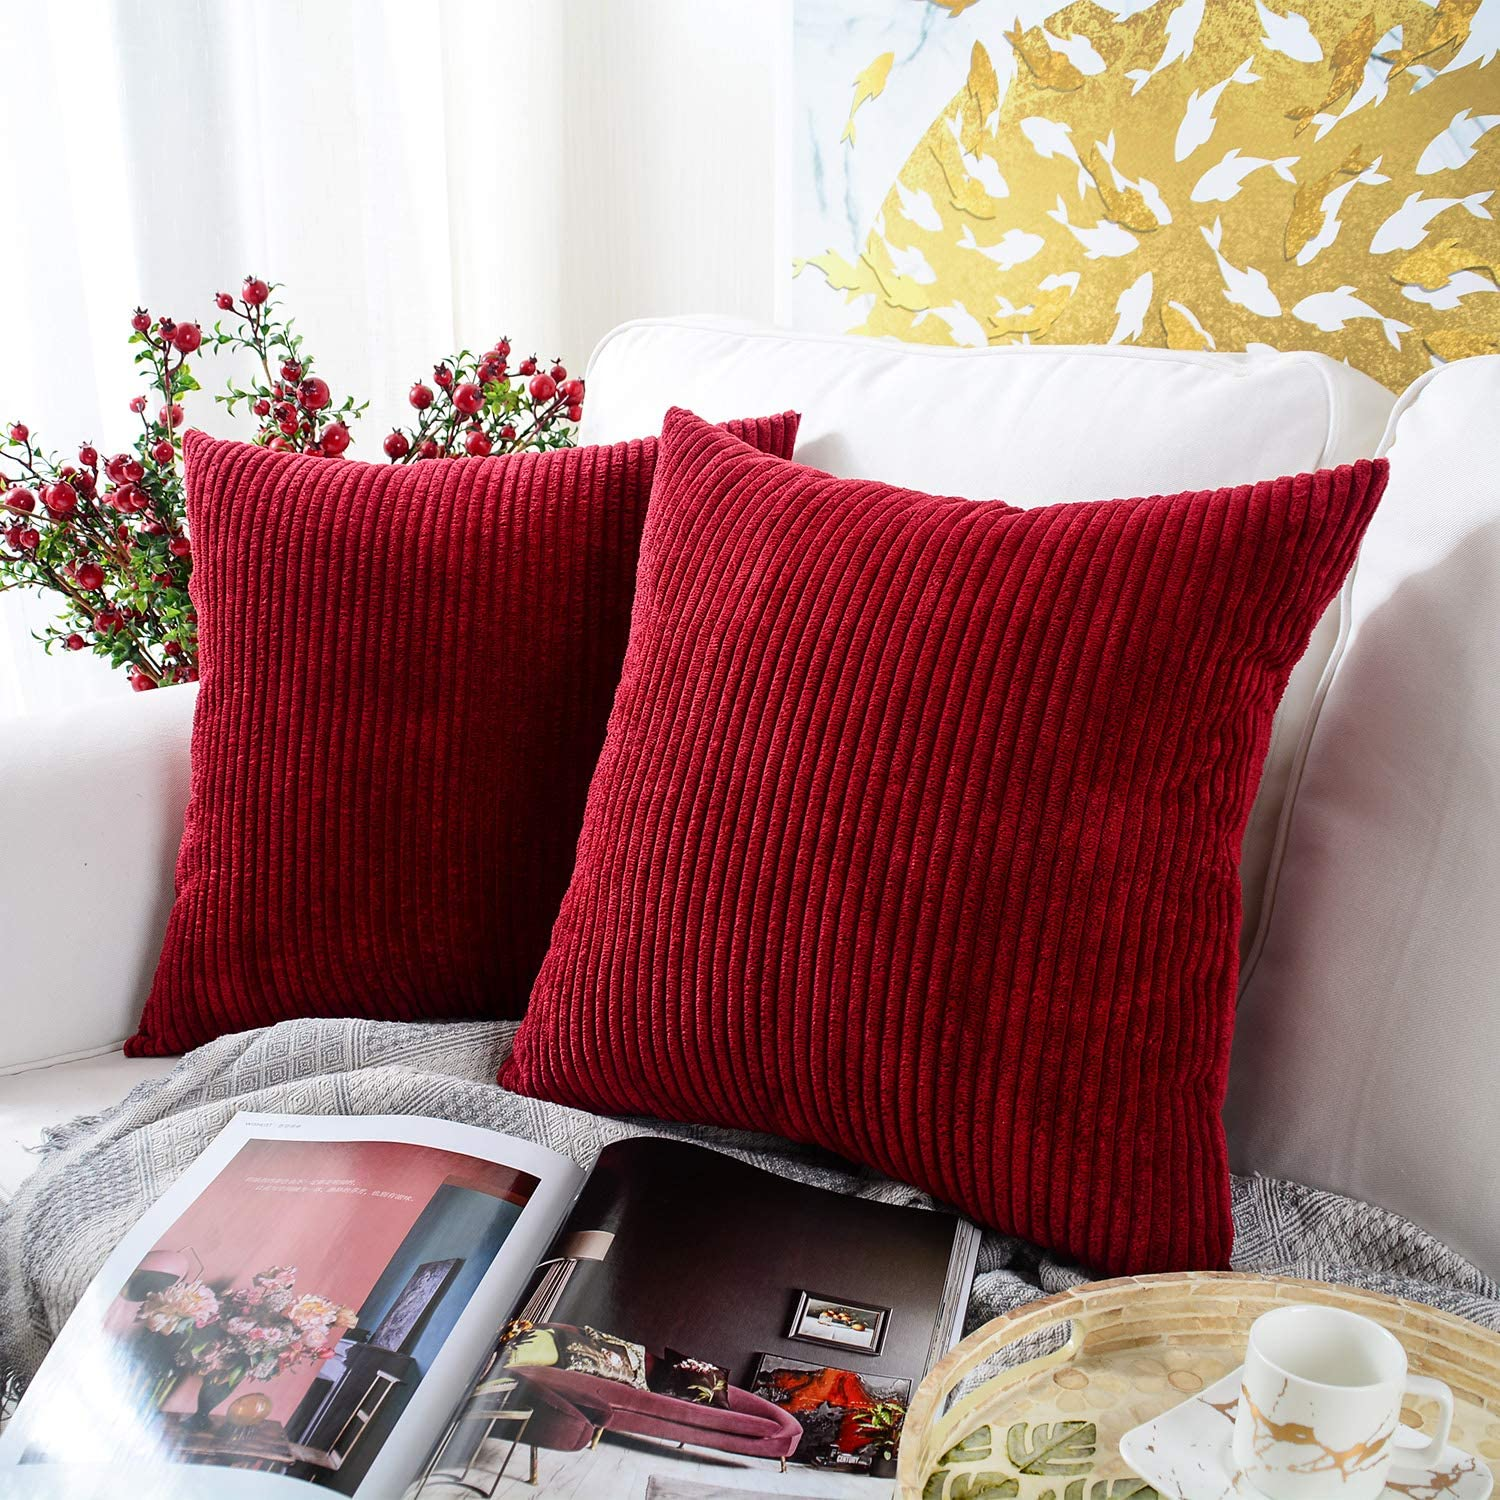 MERNETTE New Year/Christmas Decorations Corduroy Soft Decorative Square Throw Pillow Cover Cushion Covers Pillowcase, Home Decor for Party/Xmas 18x18 Inch/45x45 cm, Christmas Red, Set of 2